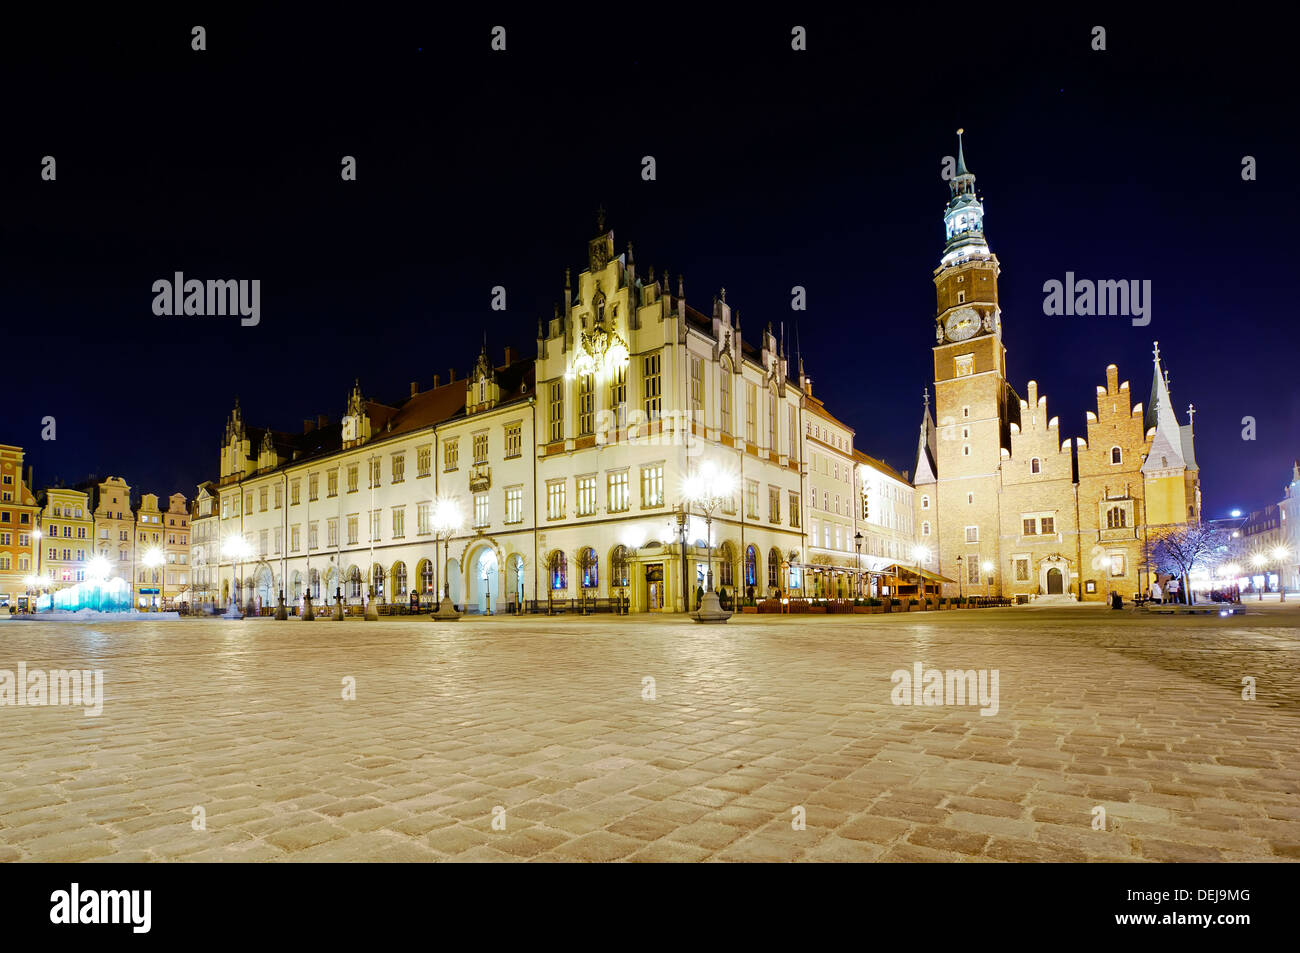 old and new city hall in wroclaw, poland, at night - Stock Image